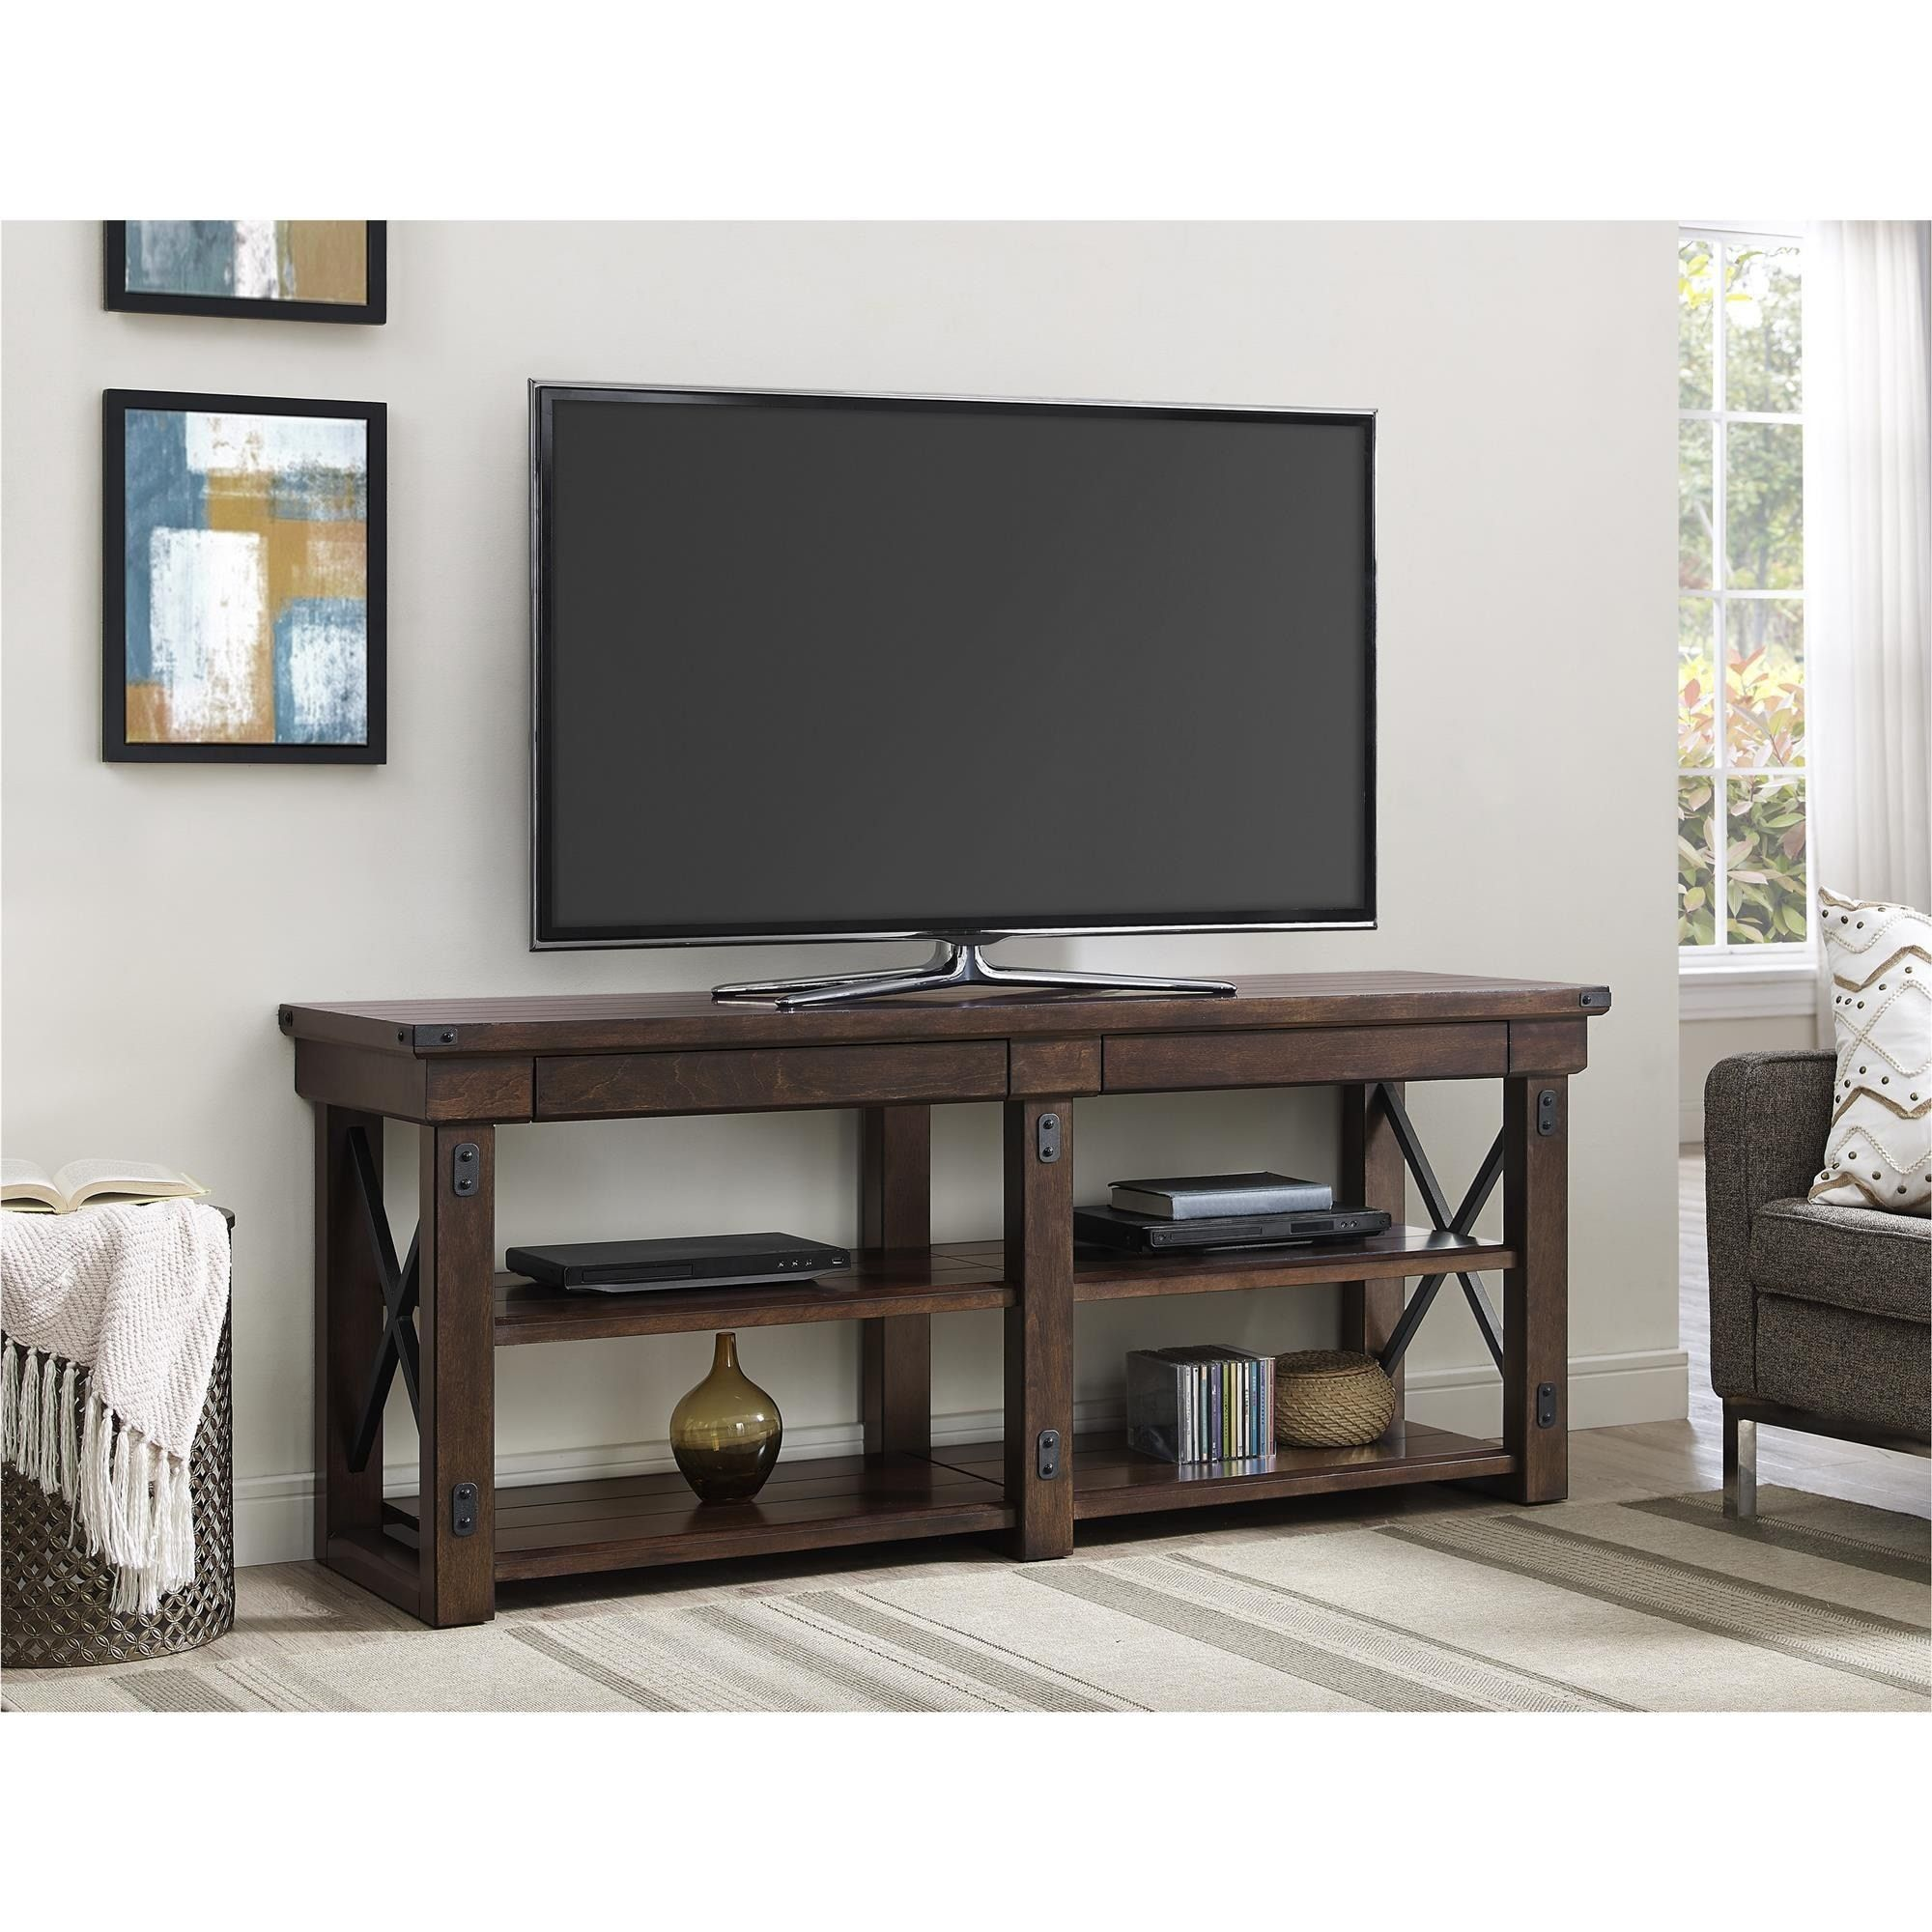 Carbon Loft Konkle Mahogany Veneer 65 Inch Tv Stand Altra